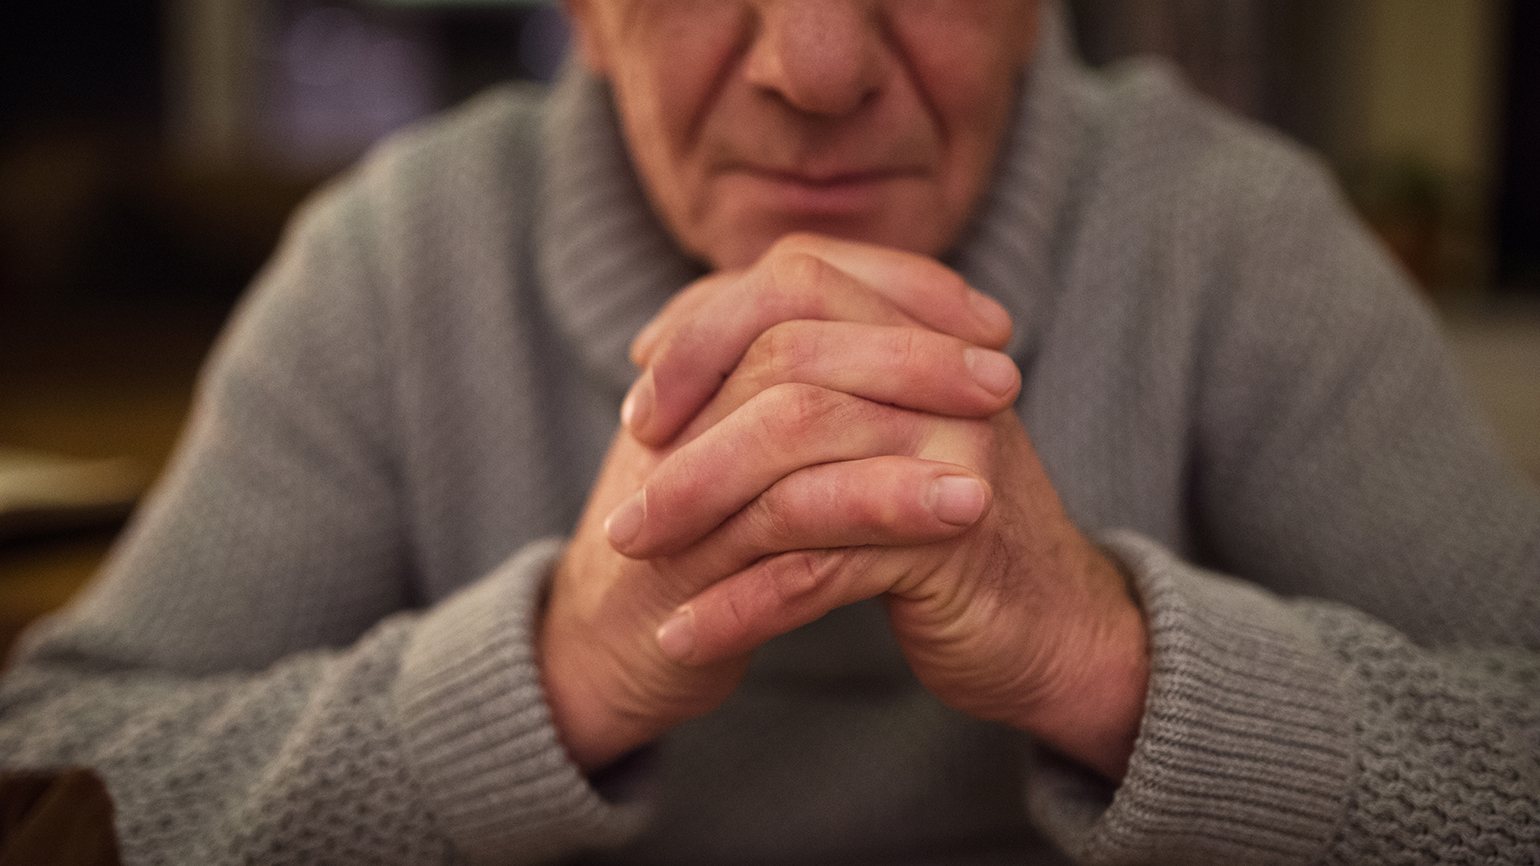 A man clasps his hands in prayer